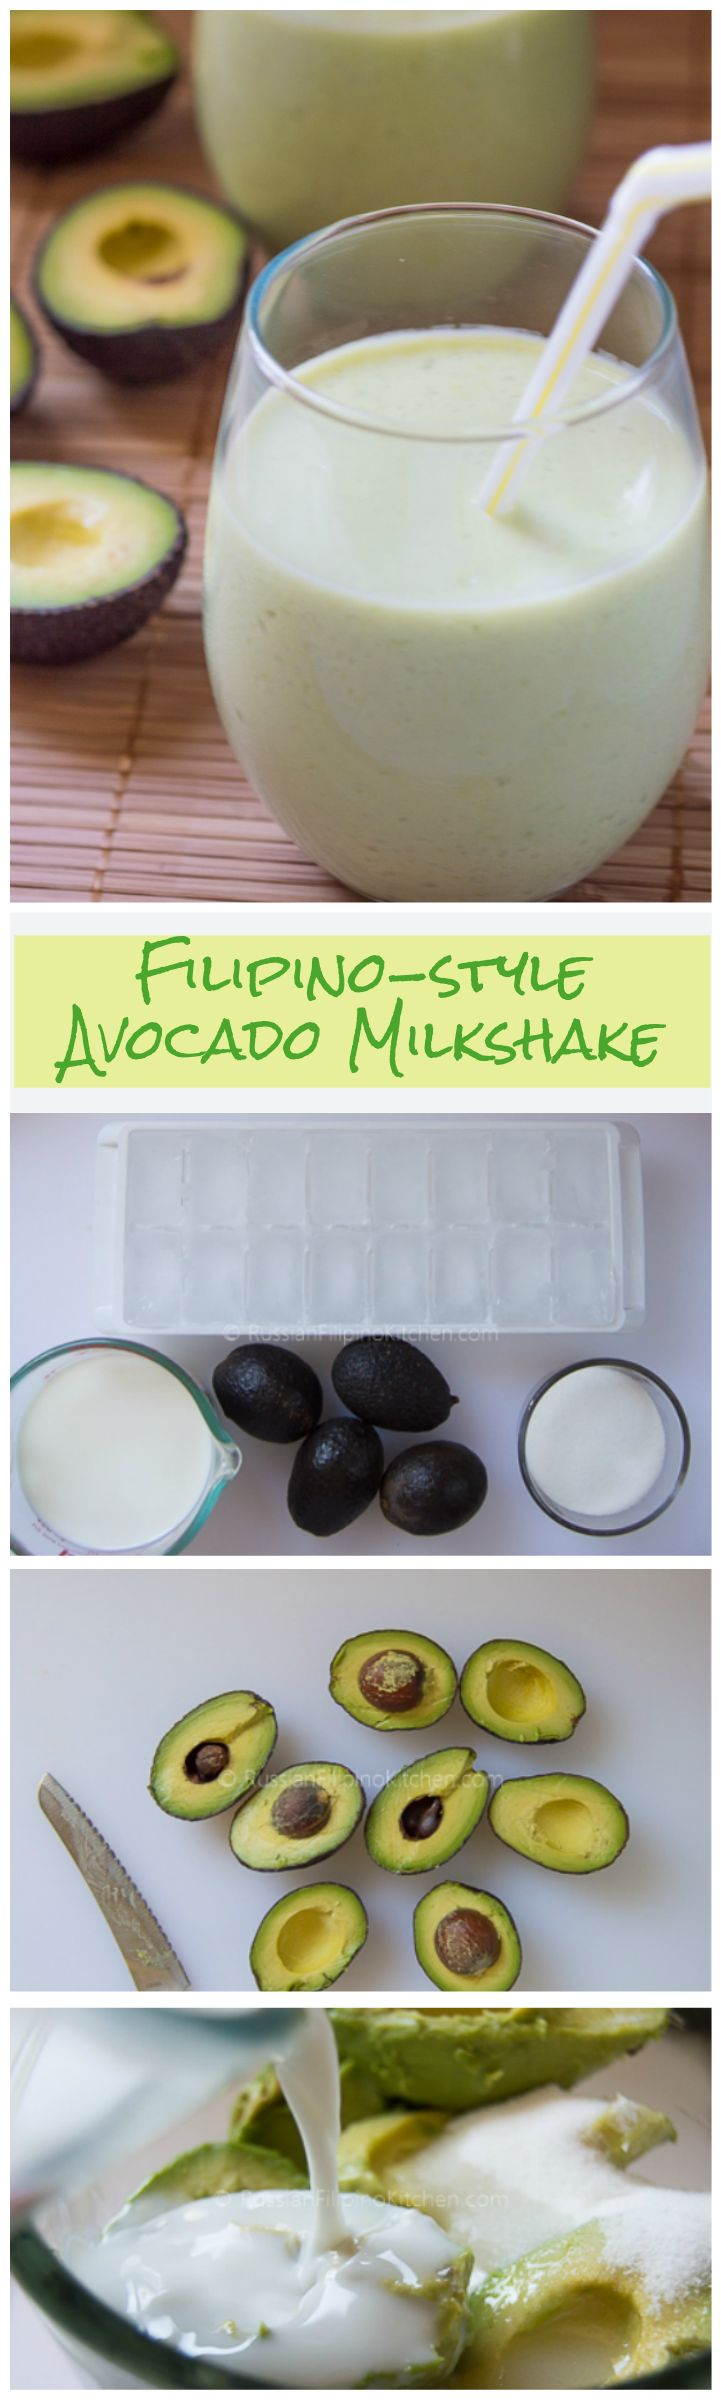 Quick and easy 4-ingredient avocado milk shake recipe.